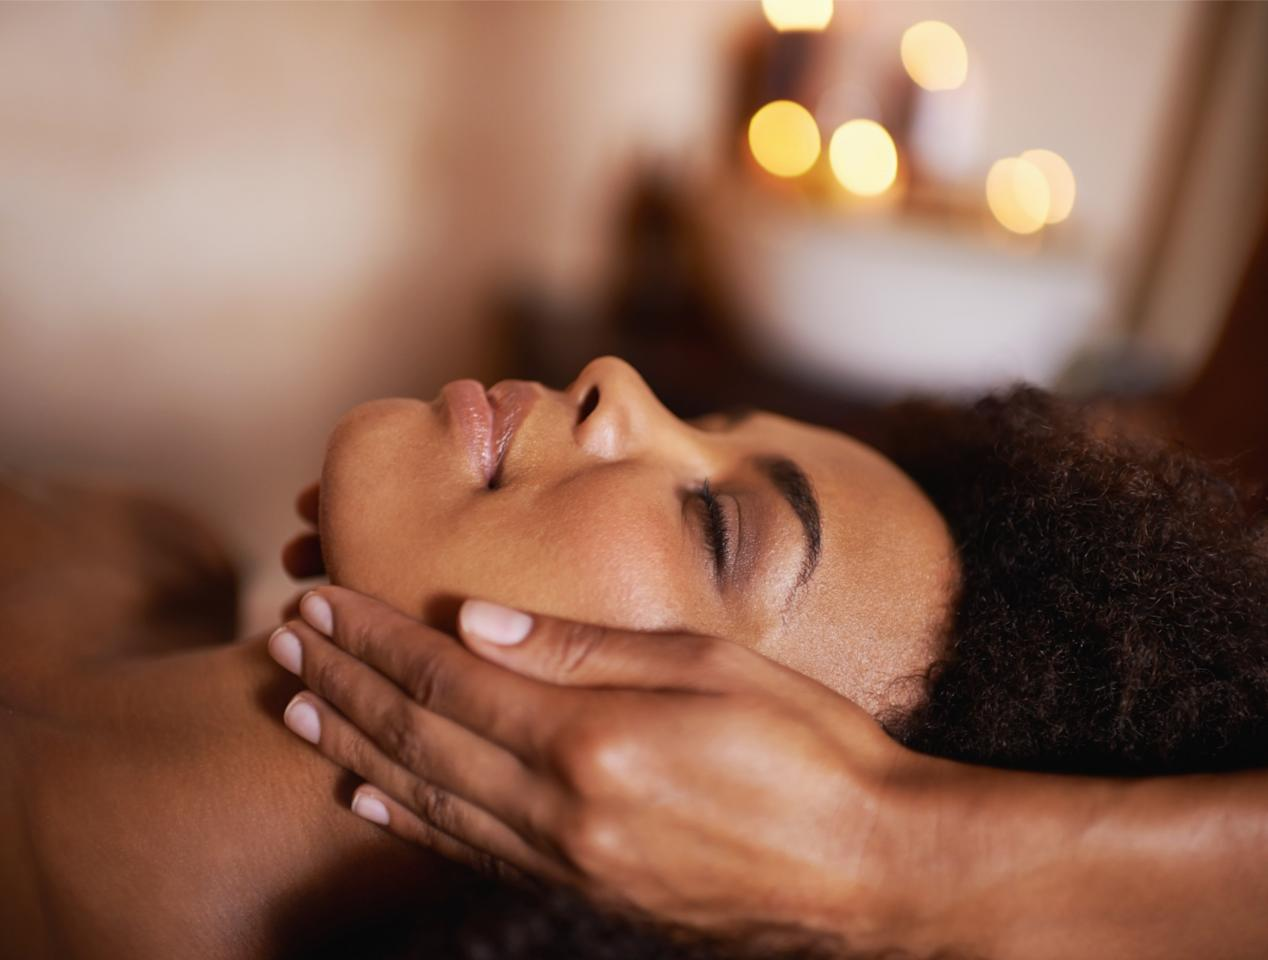 "<p>Self-care is very important for new moms. Why not encourage her to take some ""me time"" and treat her to a relaxing massage, facial, haircut, or aromatherapy treatment? SpaFinder has gift cards you can purchase for salons, wellness centers, and resorts. For more info, visit <a rel=""nofollow"" href=""https://www.spafinder.com/Catalog/spagiftcertificates.jsp?_ga=2.43344485.178450804.1494351211-792127783.1494342296"">spafinder.com</a>. (Photo:PeopleImages) </p>"